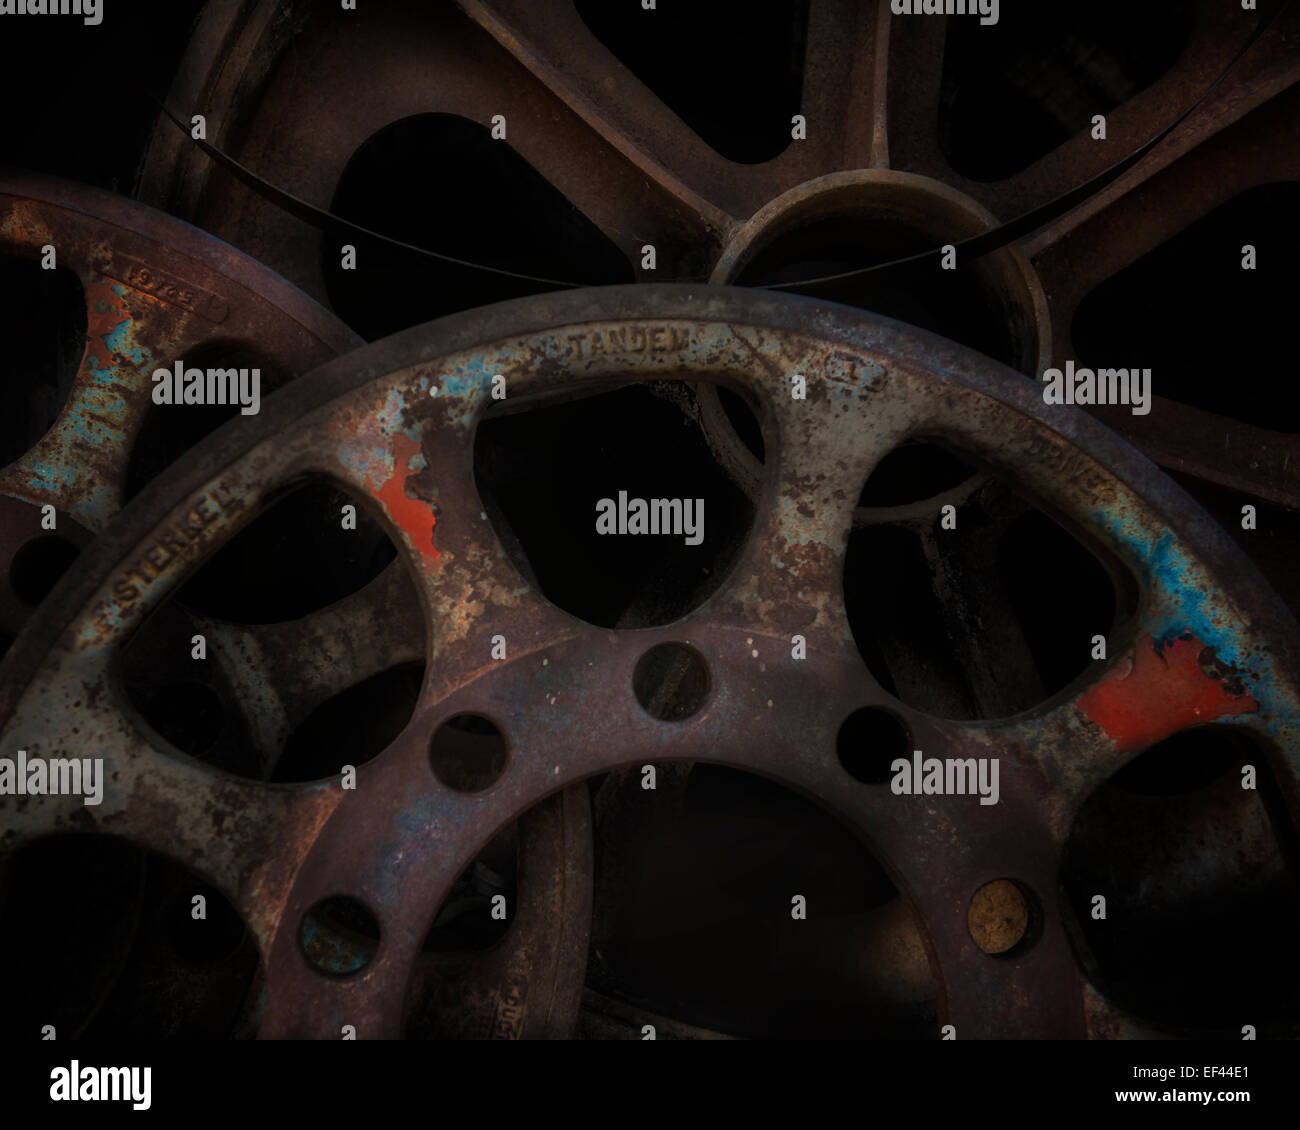 A dramatic high resolution fine art style image of fly wheels and gears near Jerome Arizona - Stock Image